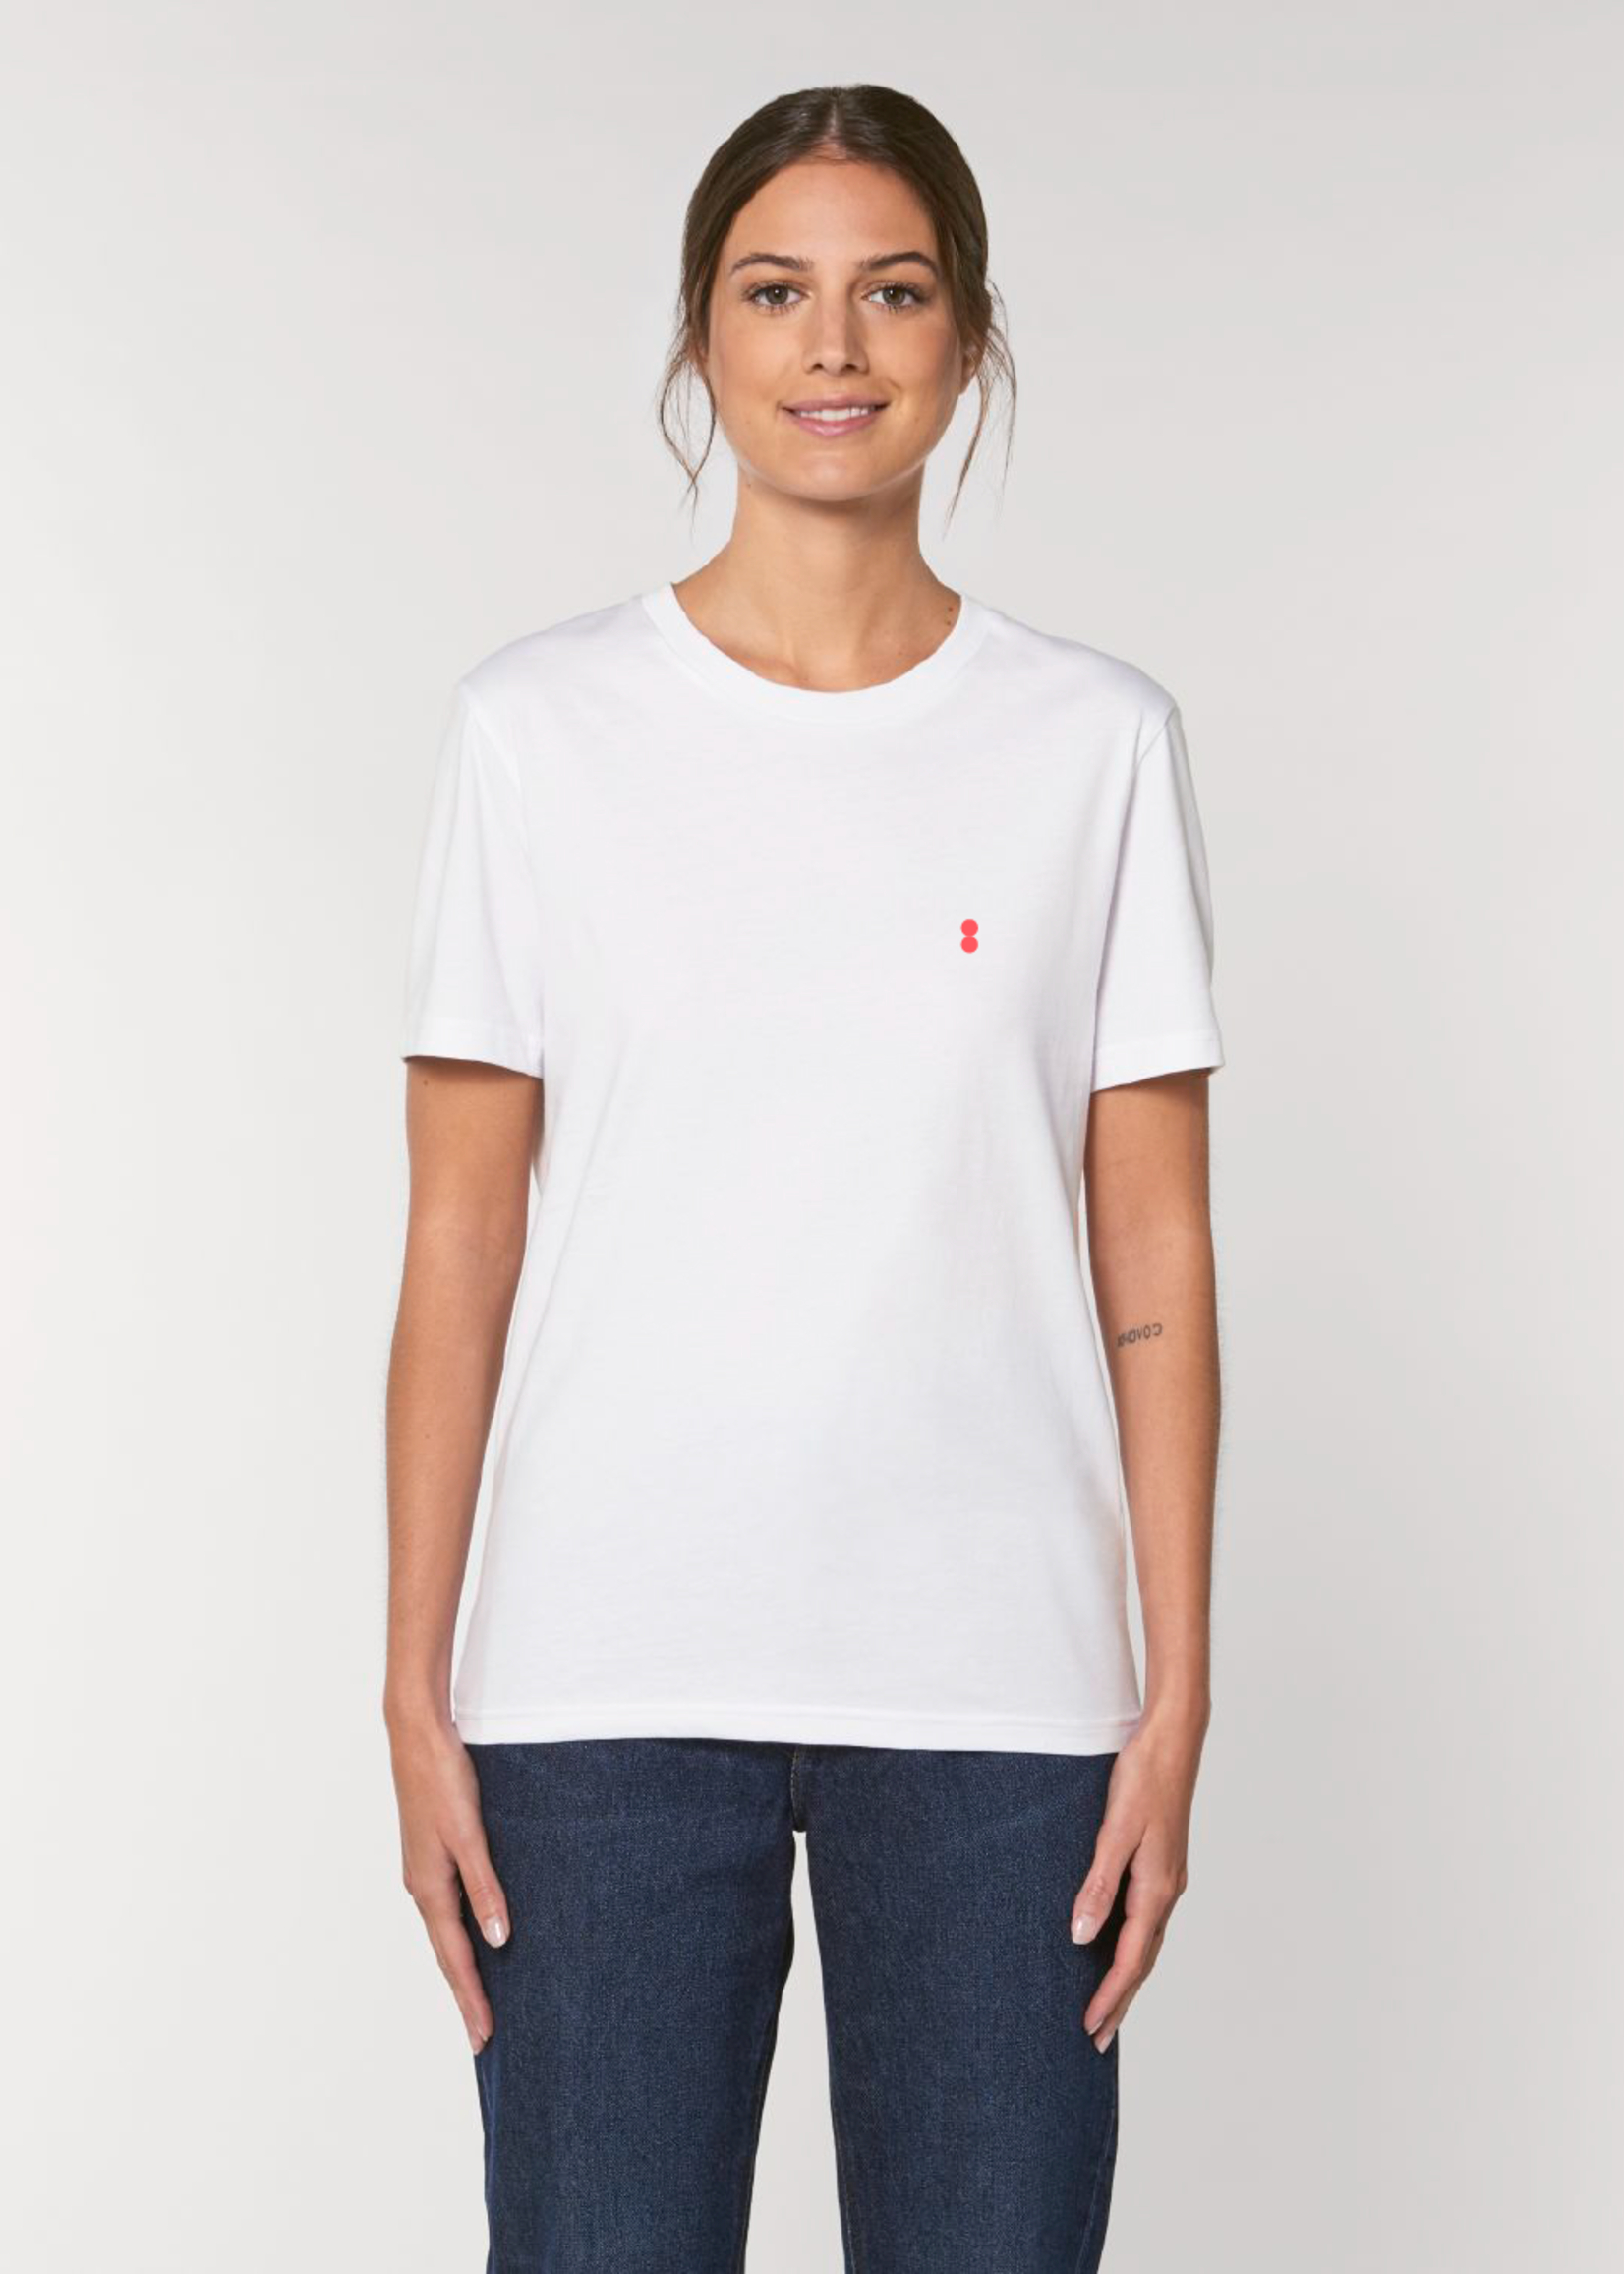 Bataia T-Shirt - All in All the time - White/Infrared